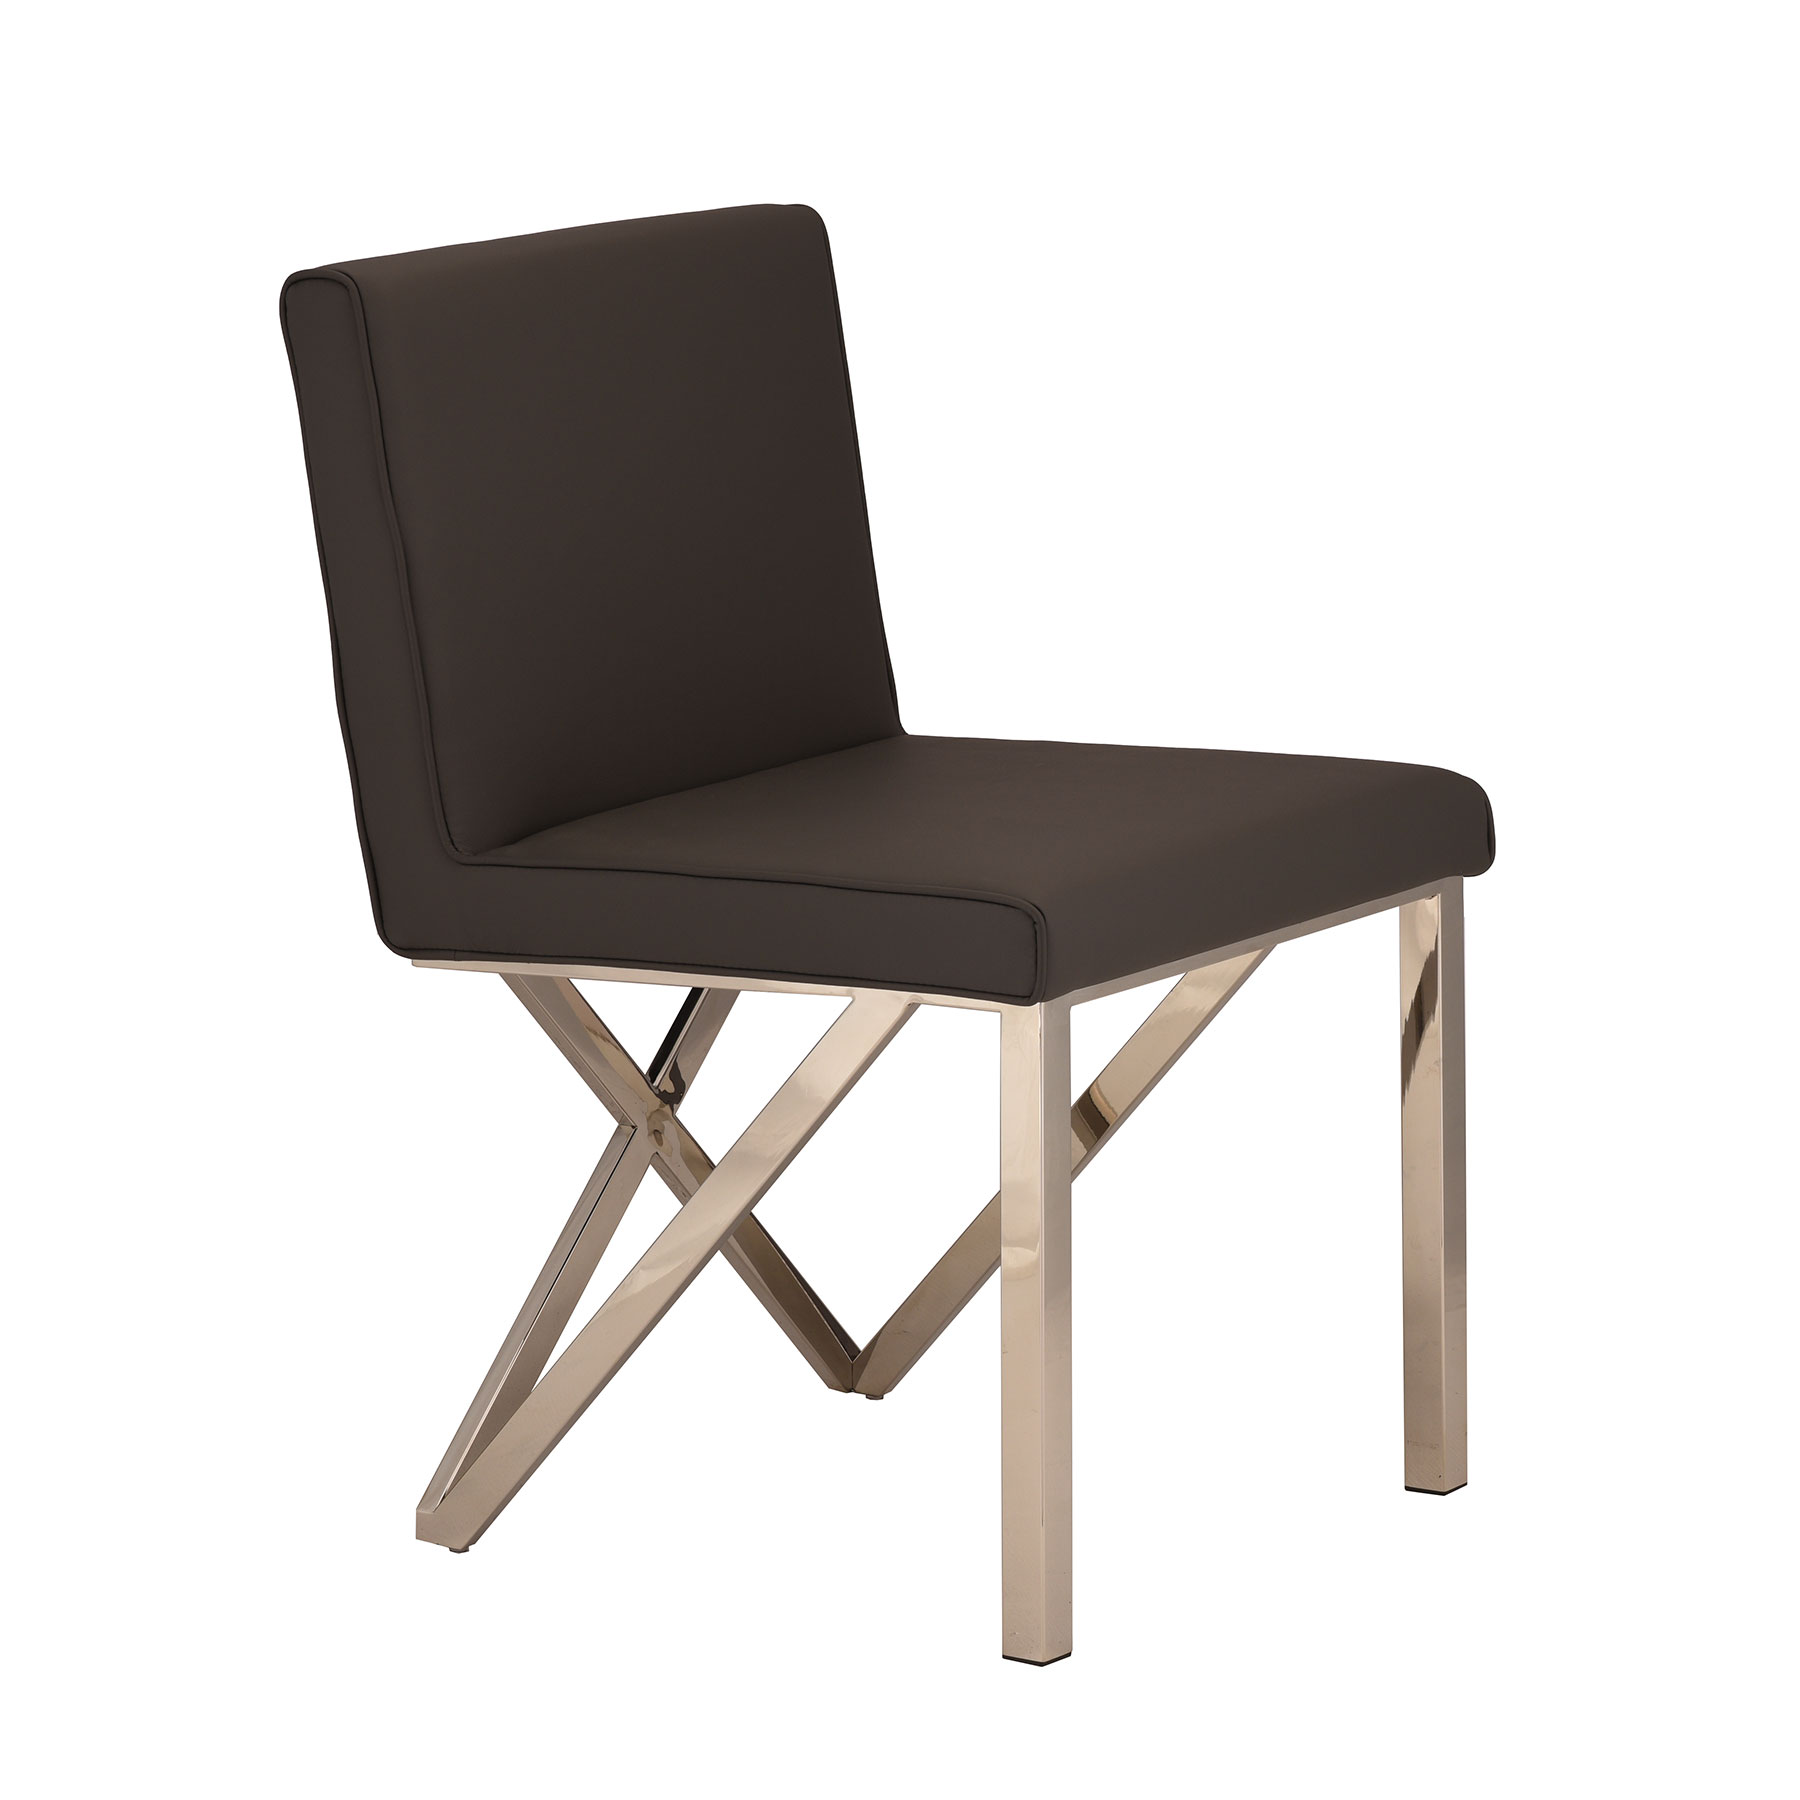 Talbot Dining Chair   Black / Steel   Contemporary | Nuevo HGTB521